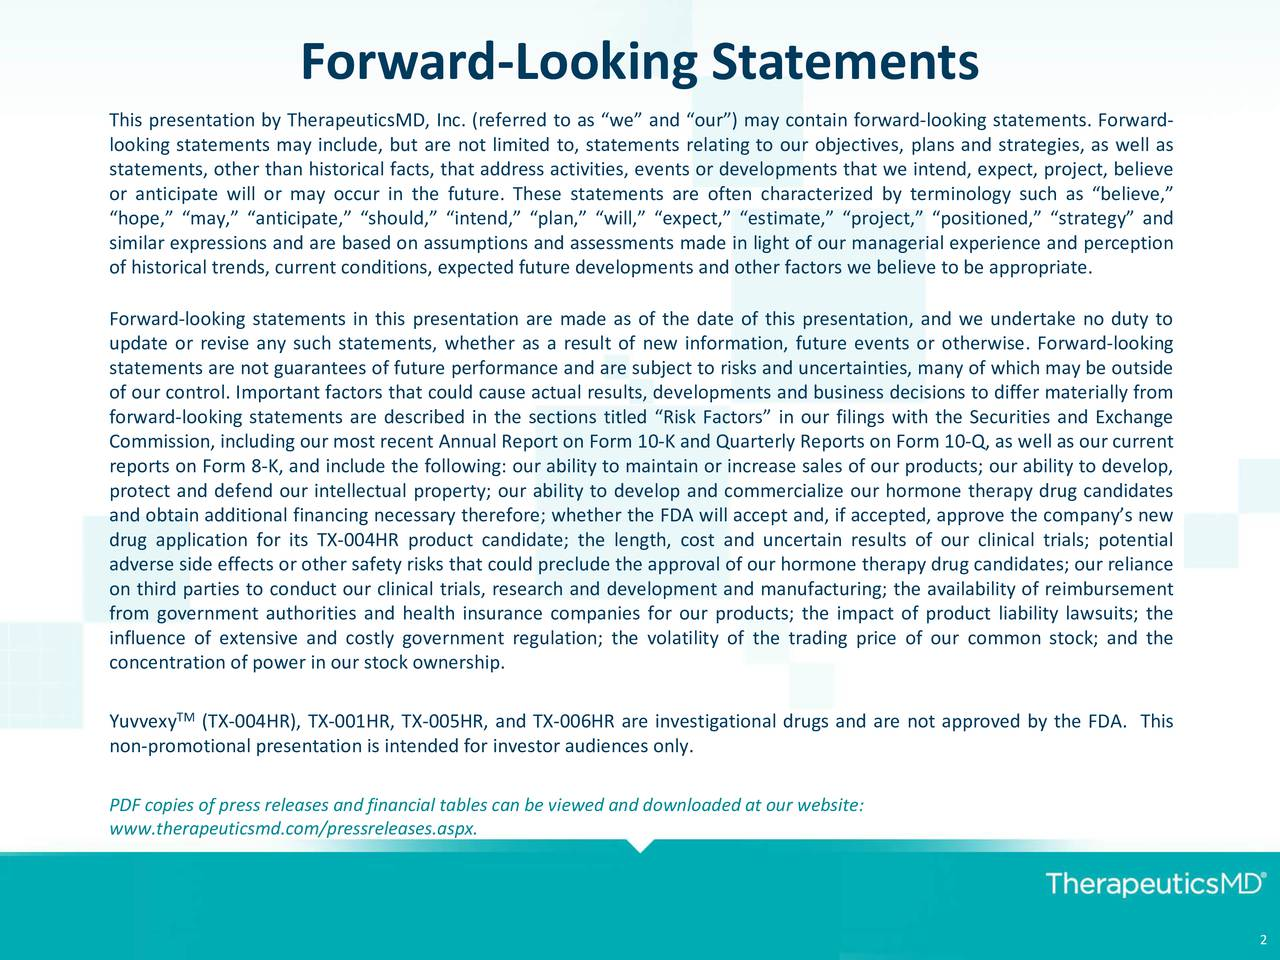 This presentation by TherapeuticsMD, Inc. (referred to as we and our) may contain forward-looking statements. Forward- looking statements may include, but are not limited to, statements relating to our objectives, plans and strategies, as well as statements, other than historical facts, that address activities, events or developments that we intend, expect, project, believe or anticipate will or may occur in the future. These statements are often characterized by terminology such as believe, hope, may, anticipate, should, intend, plan, will, expect, estimate, project, positioned, strategy and similar expressions and are based on assumptions and assessments made in light of our managerial experience and perception of historical trends, current conditions, expected future developments and other factors we believe to be appropriate. Forward-looking statements in this presentation are made as of the date of this presentation, and we undertake no duty to update or revise any such statements, whether as a result of new information, future events or otherwise. Forward-looking statements are not guarantees of future performance and are subject to risks and uncertainties, many of which may be outside of our control. Important factors that could cause actual results, developments and business decisions to differ materially from forward-looking statements are described in the sections titled Risk Factors in our filings with the Securities and Exchange Commission, including our most recent Annual Report on Form 10-K and Quarterly Reports on Form 10-Q, as well as our current reports on Form 8-K, and include the following: our ability to maintain or increase sales of our products; our ability to develop, protect and defend our intellectual property; our ability to develop and commercialize our hormone therapy drug candidates and obtain additional financing necessary therefore; whether the FDA will accept and, if accepted, approve the companys new drug application for its TX-004HR product candidate; the length, cost and uncertain results of our clinical trials; potential adverse side effects or other safety risks that could preclude the approval of our hormone therapy drug candidates; our reliance on third parties to conduct our clinical trials, research and development and manufacturing; the availability of reimbursement from government authorities and health insurance companies for our products; the impact of product liability lawsuits; the influence of extensive and costly government regulation; the volatility of the trading price of our common stock; and the concentration of power in our stock ownership. TM Yuvvexy (TX-004HR), TX-001HR, TX-005HR, and TX-006HR are investigational drugs and are not approved by the FDA. This non-promotional presentation is intended for investor audiences only. PDF copies of press releases and financial tables can be viewed and downloaded at our website: www.therapeuticsmd.com/pressreleases.aspx. 2